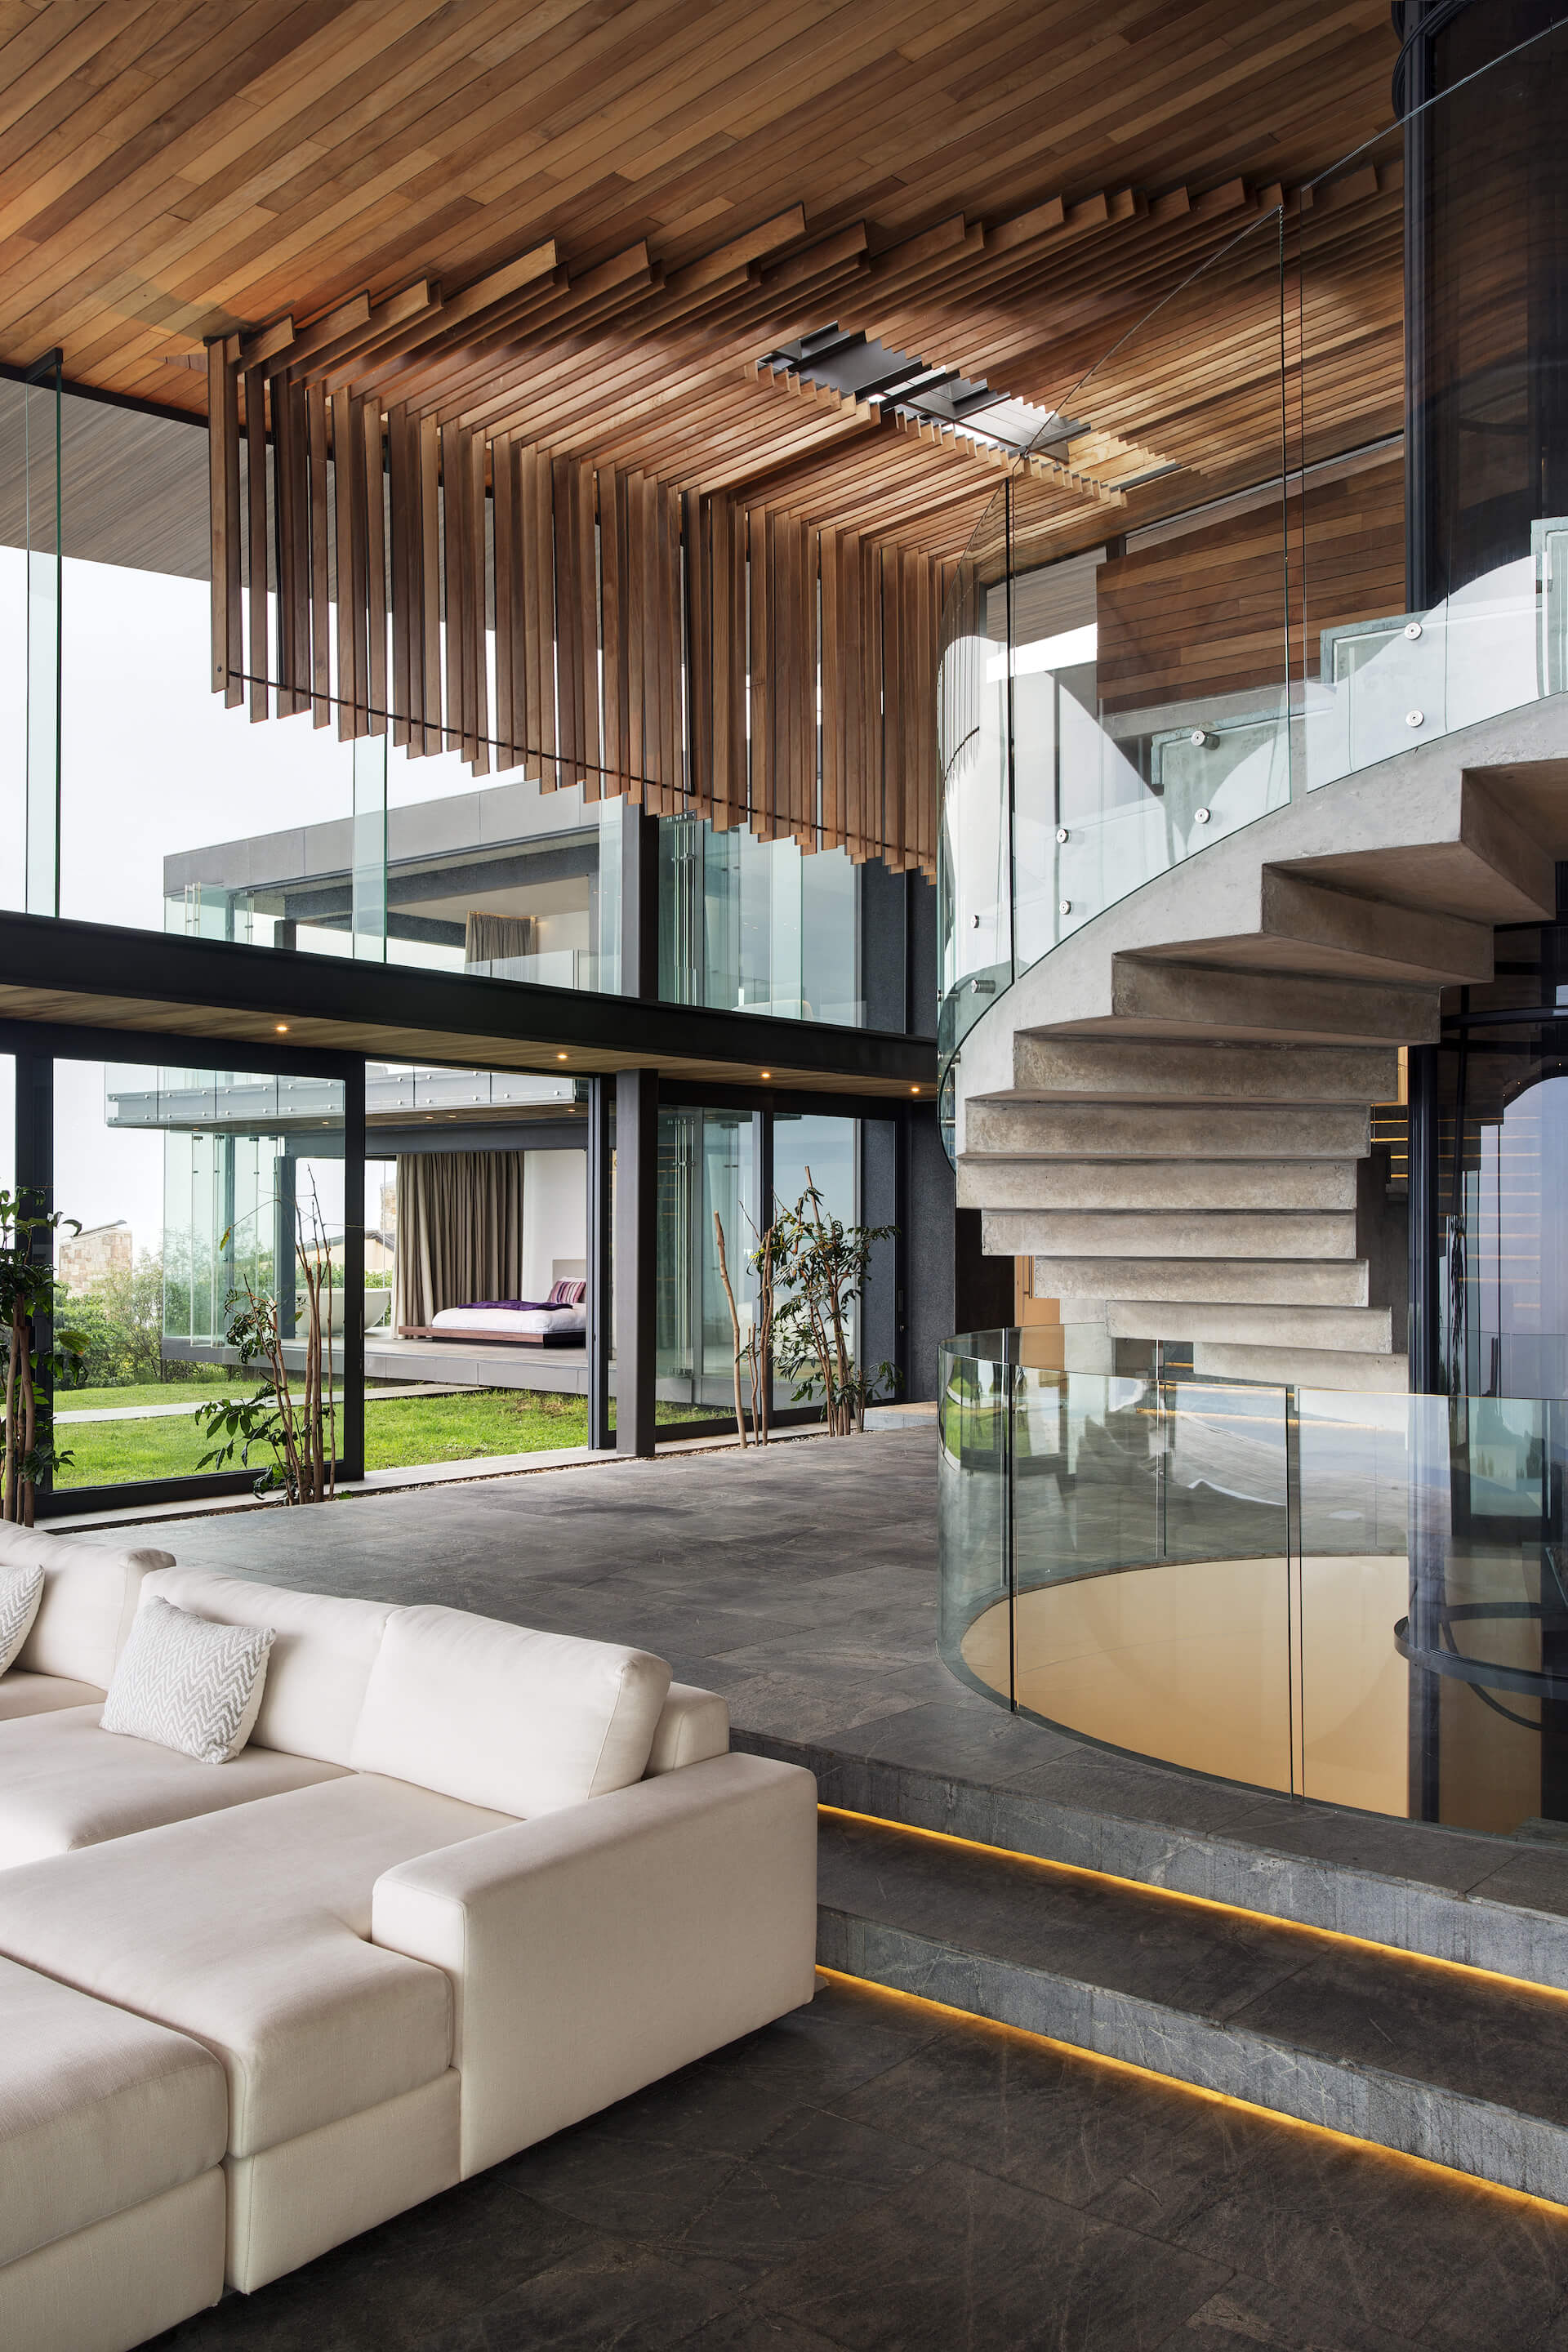 With a vertical, angled view of the central open space, we see the towering views afforded by double height windows, while the stone and glass spiral staircase at right connects the layers. Subtle under-stair lighting glows in lower area.